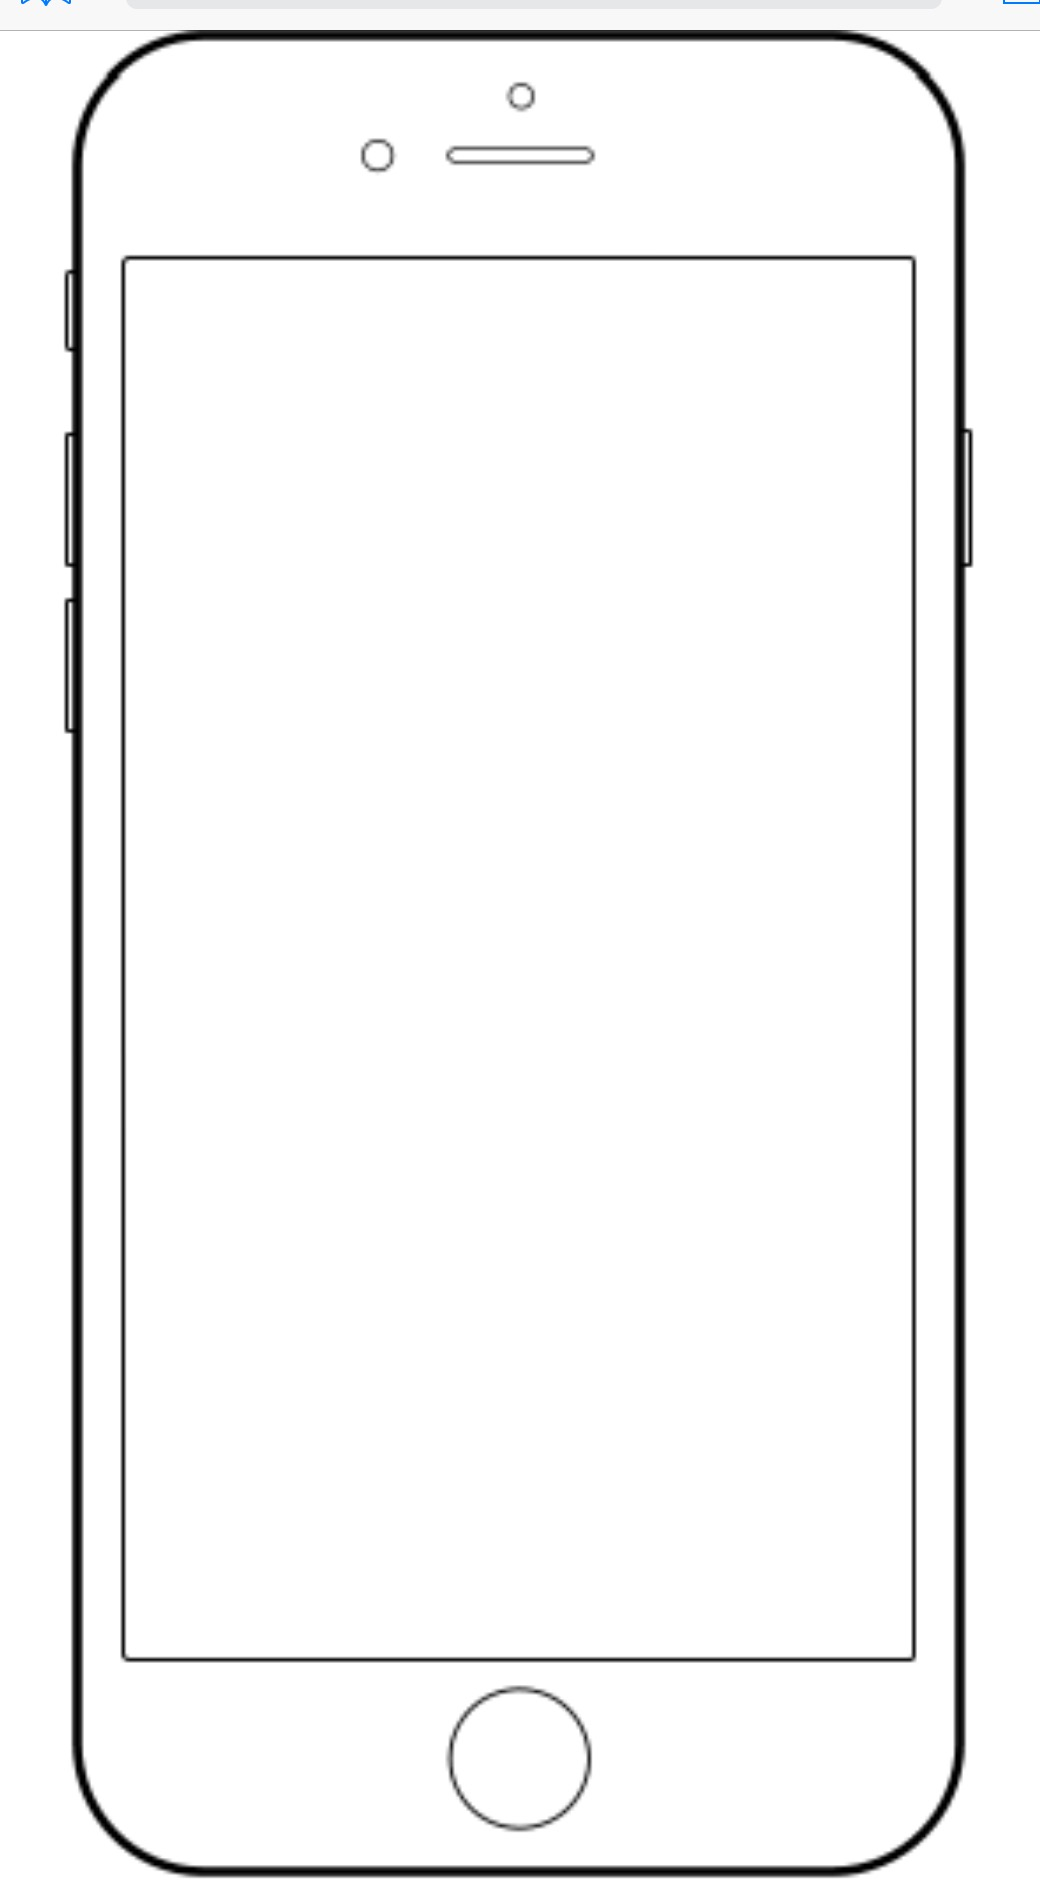 Iphone 7 Coloring Pages | Free download on ClipArtMag